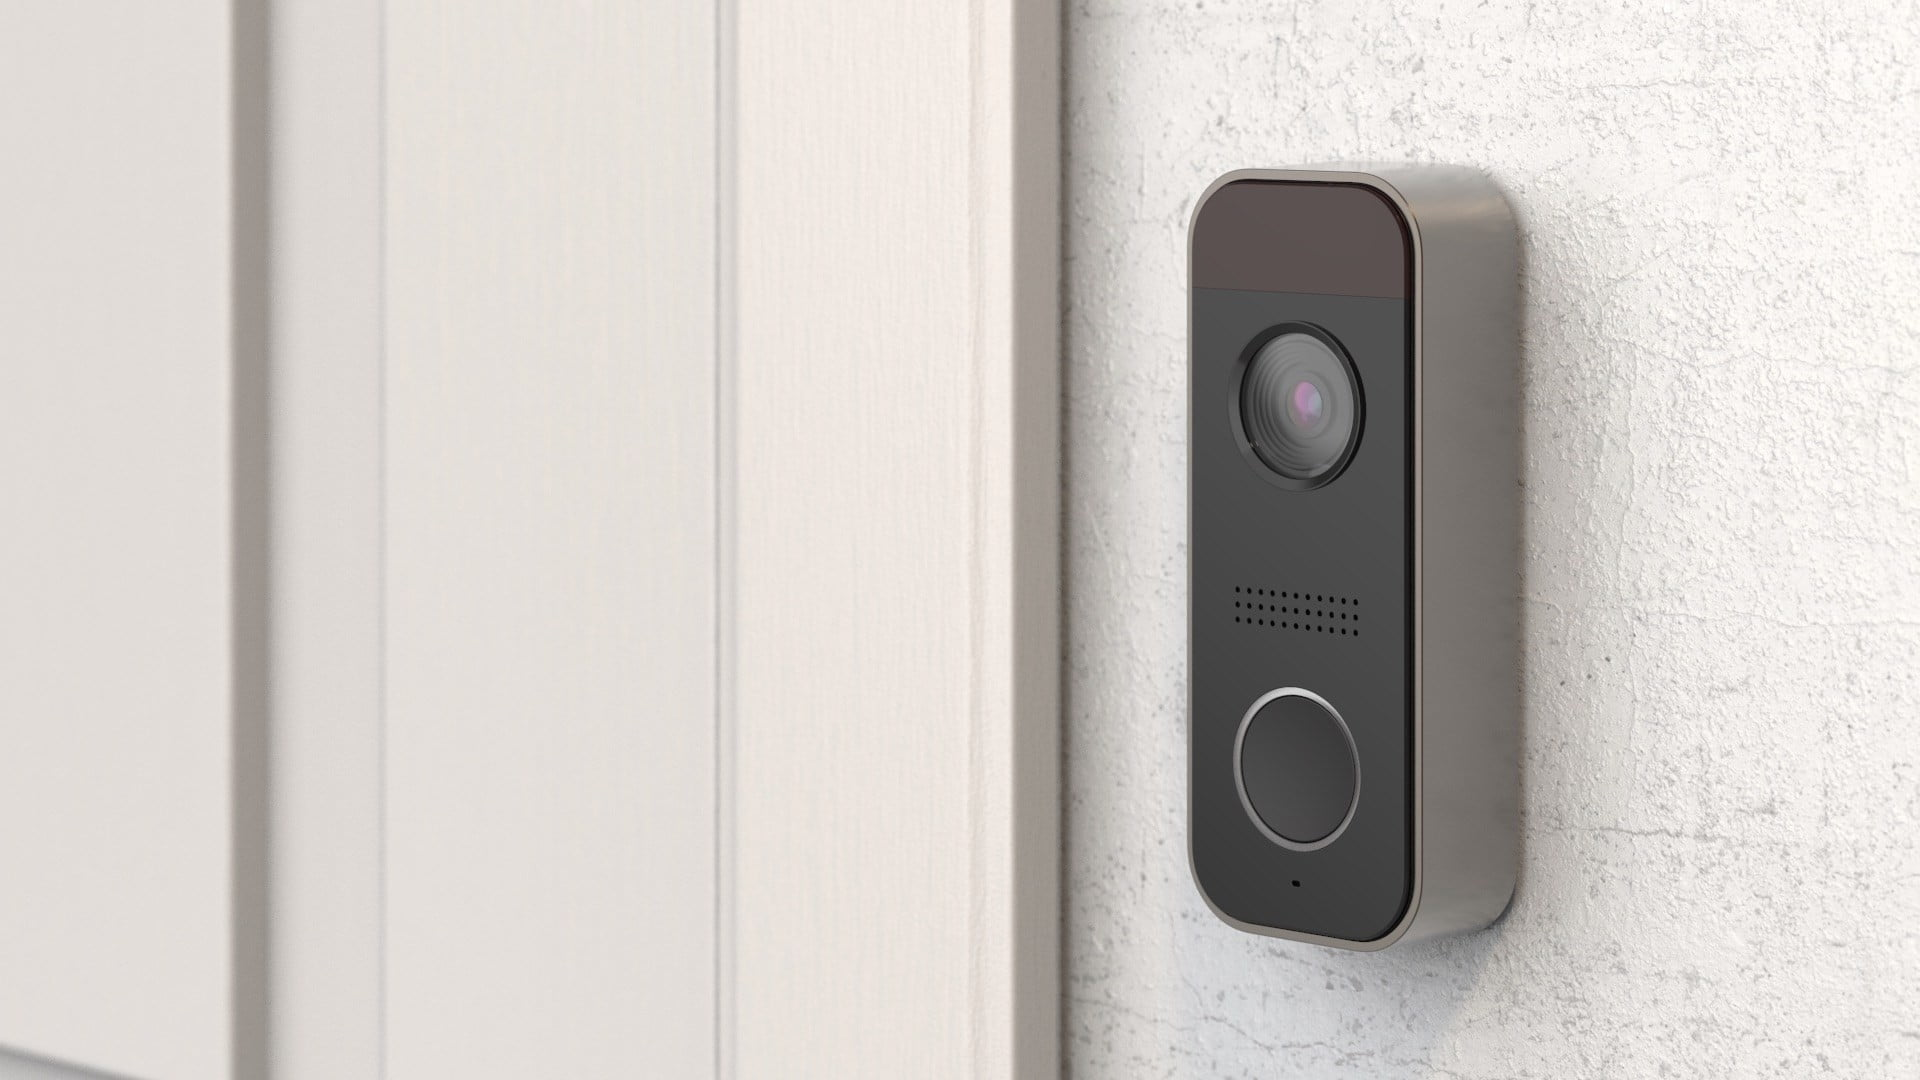 The Knok is a budget-friendly smart video doorbell that nails the basics